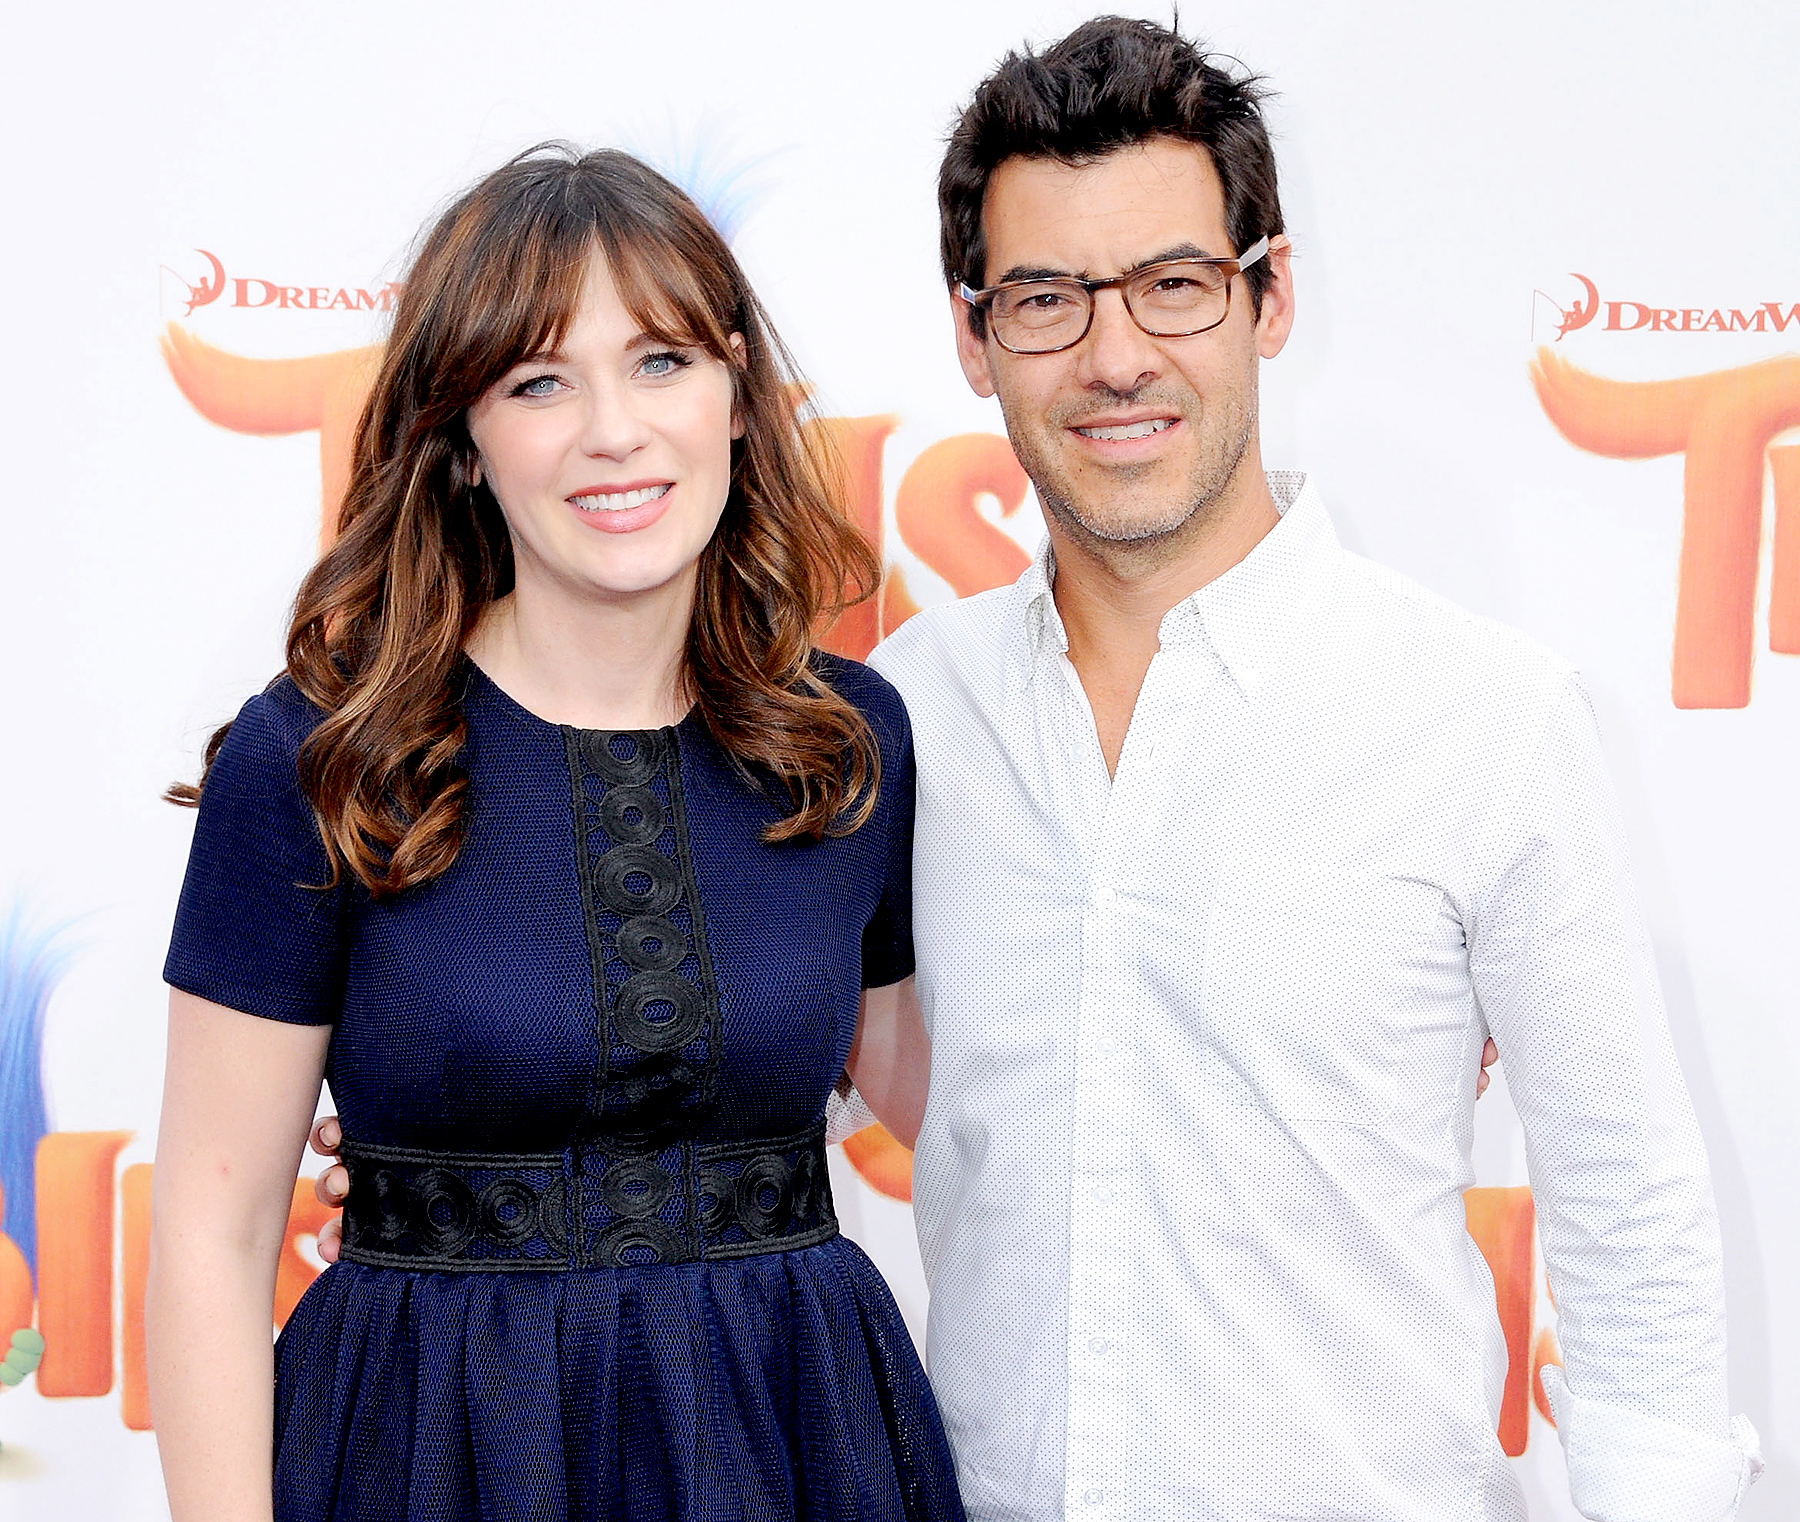 Zooey Deschanel and Jacob Pechenik attend the premiere of 20th Century Fox's 'Trolls' at Regency Village Theatre on October 23, 2016 in Westwood, California.